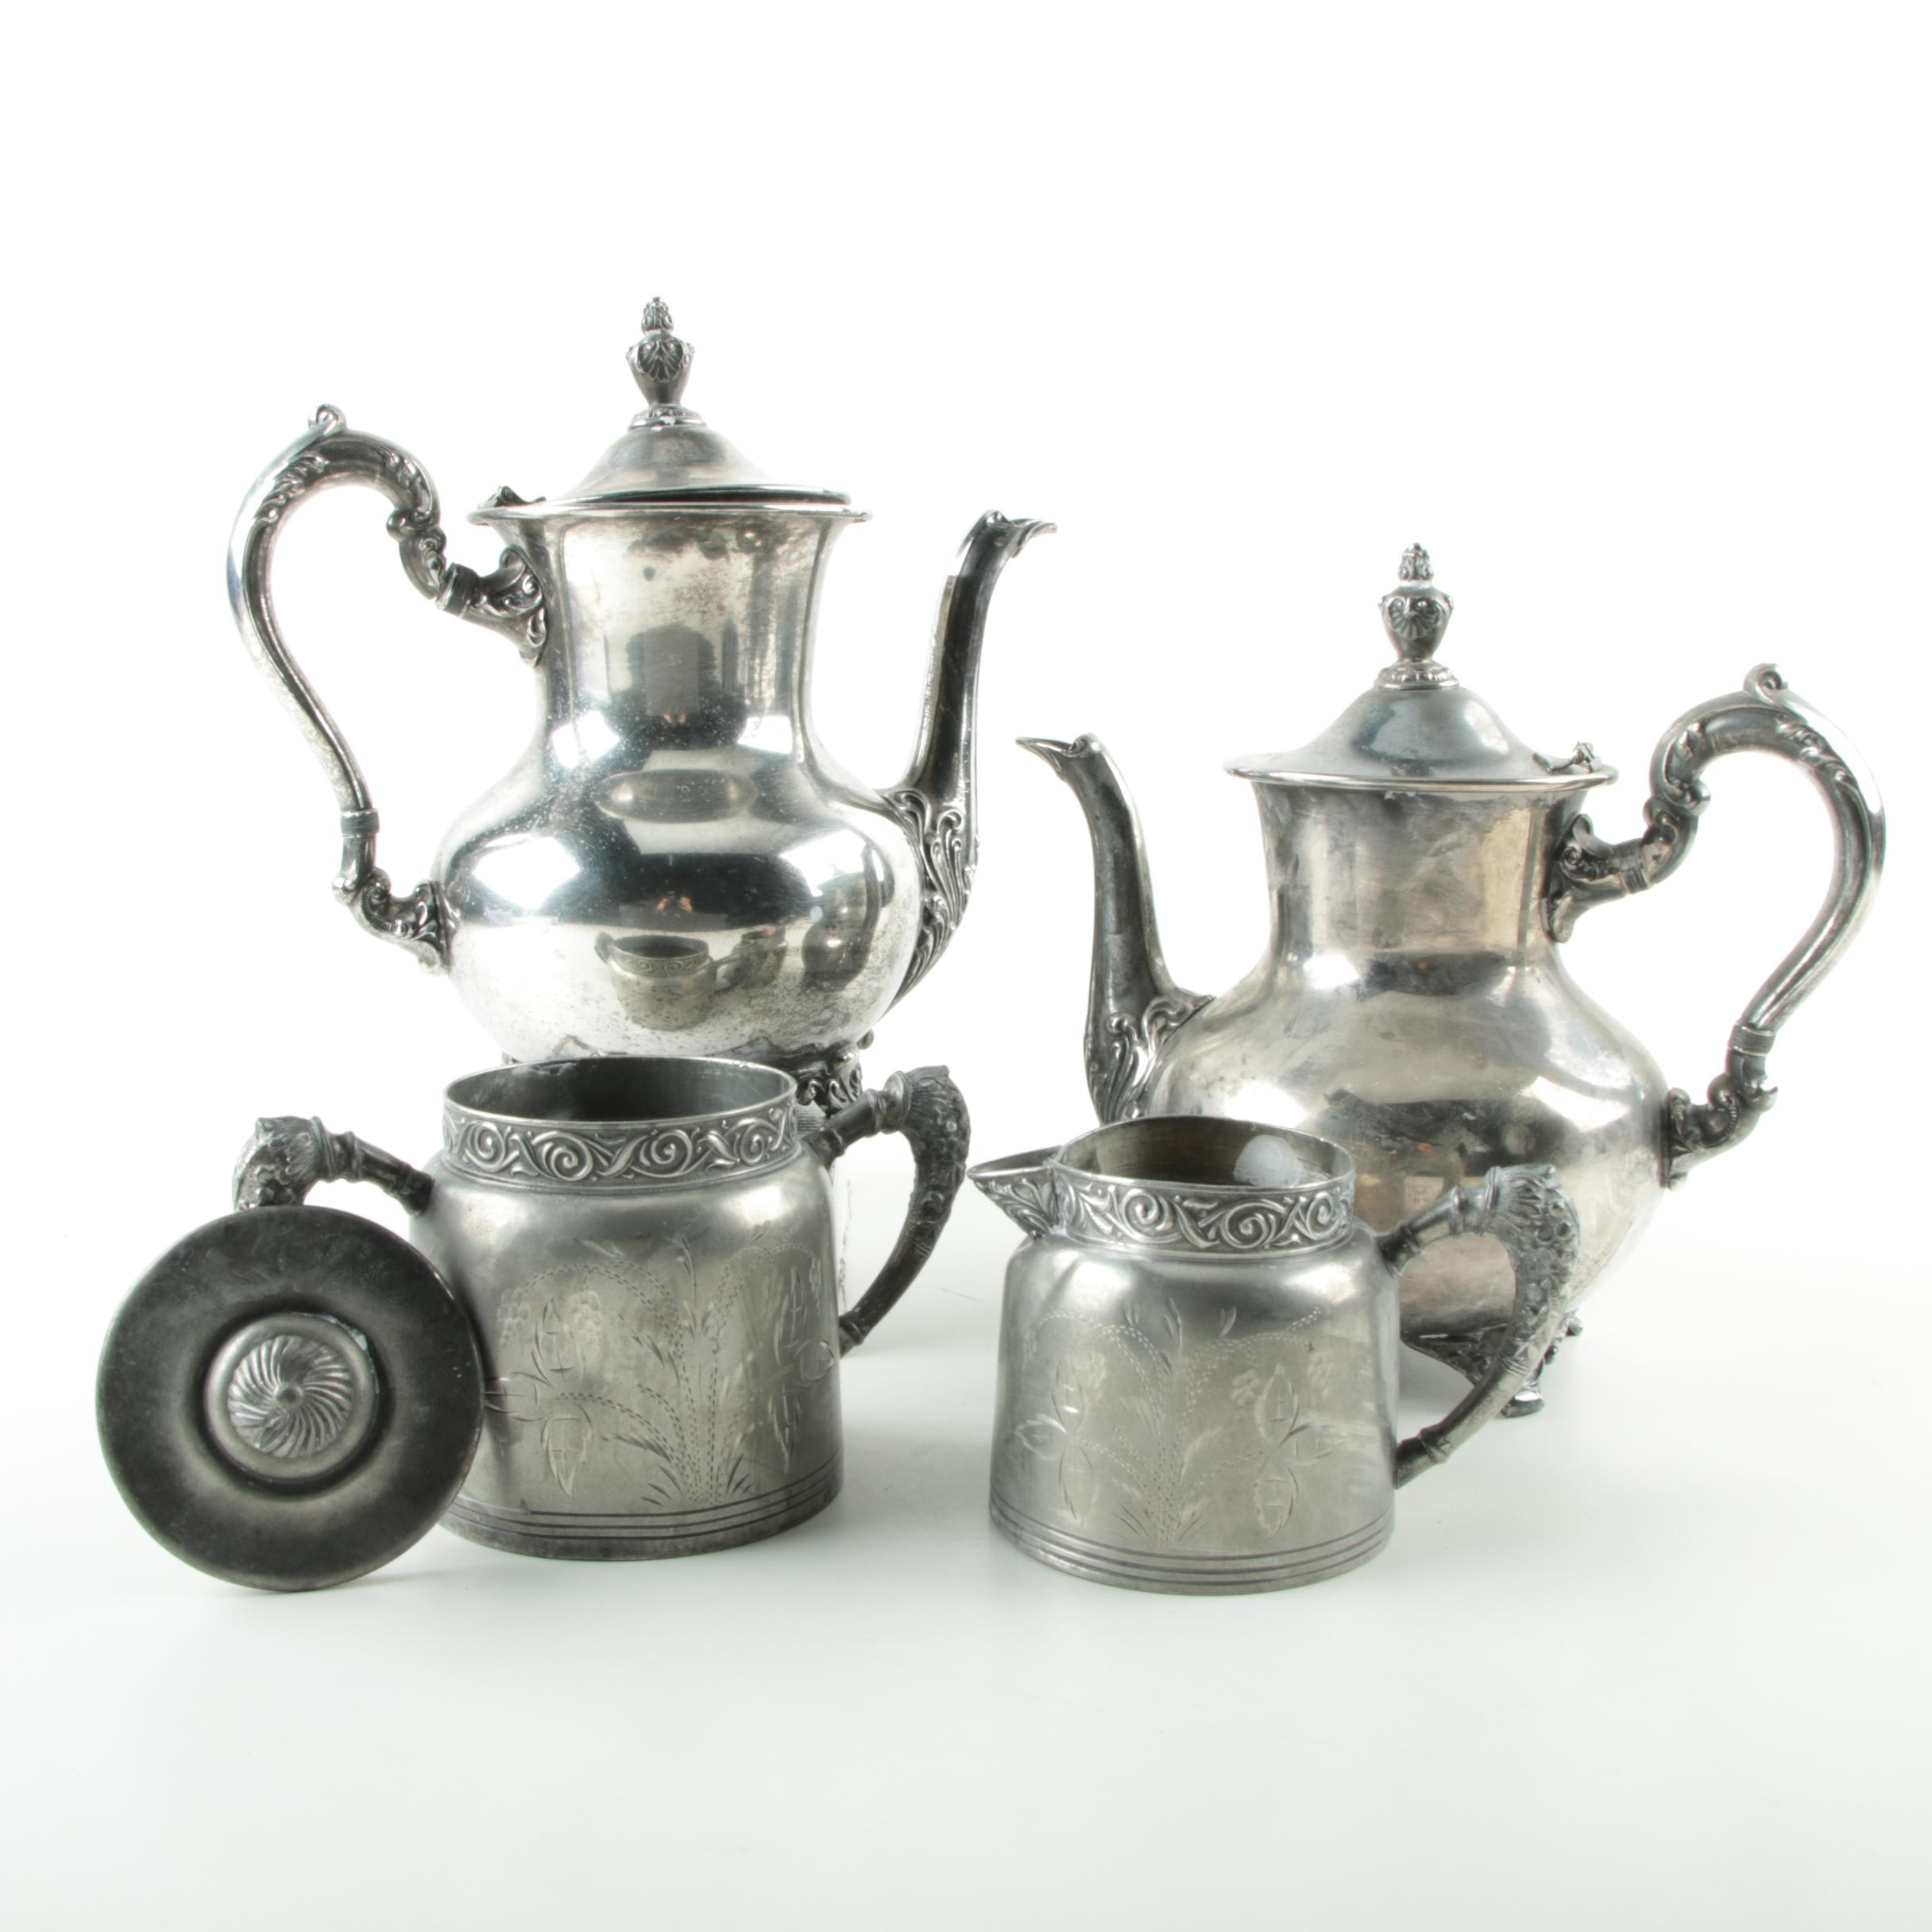 Poole Silver Plate Coffee and Teapot with Empire Mfg. Co. Sugar and Creamer Set